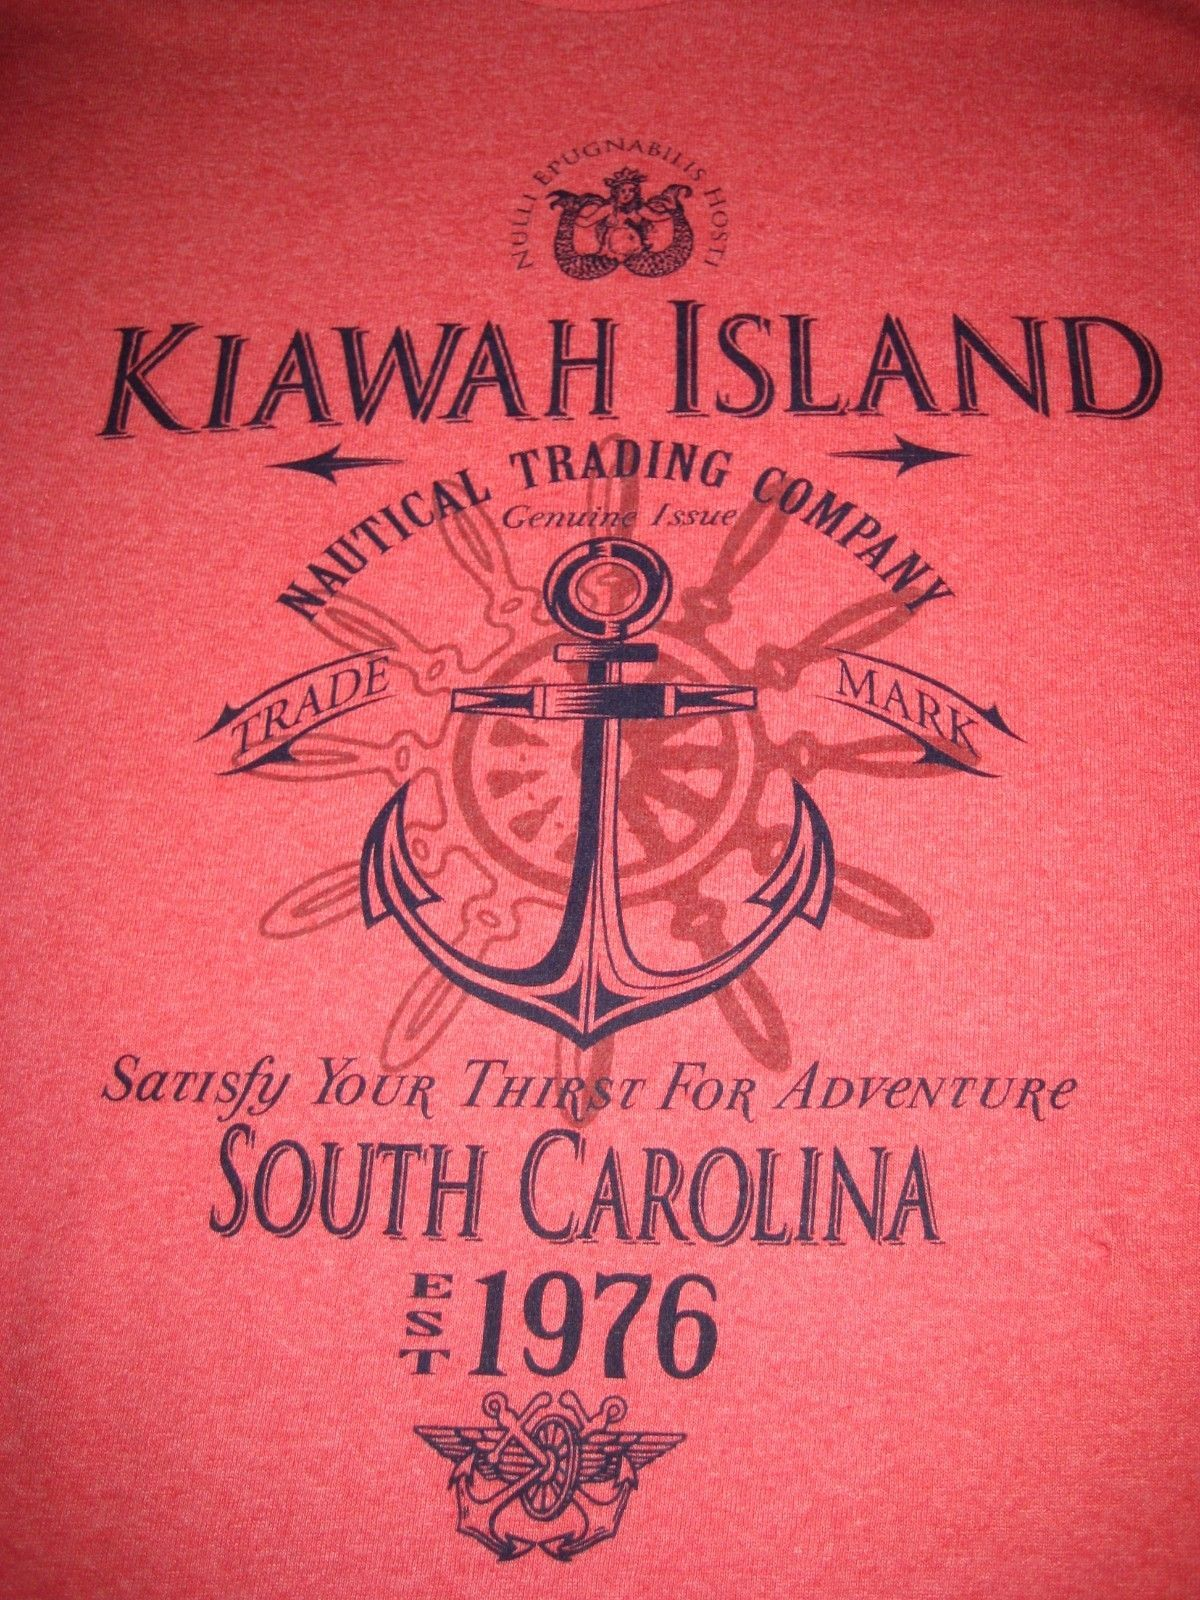 KIAWAH ISLAND TShirt Size Large Red Cotton Graphic T